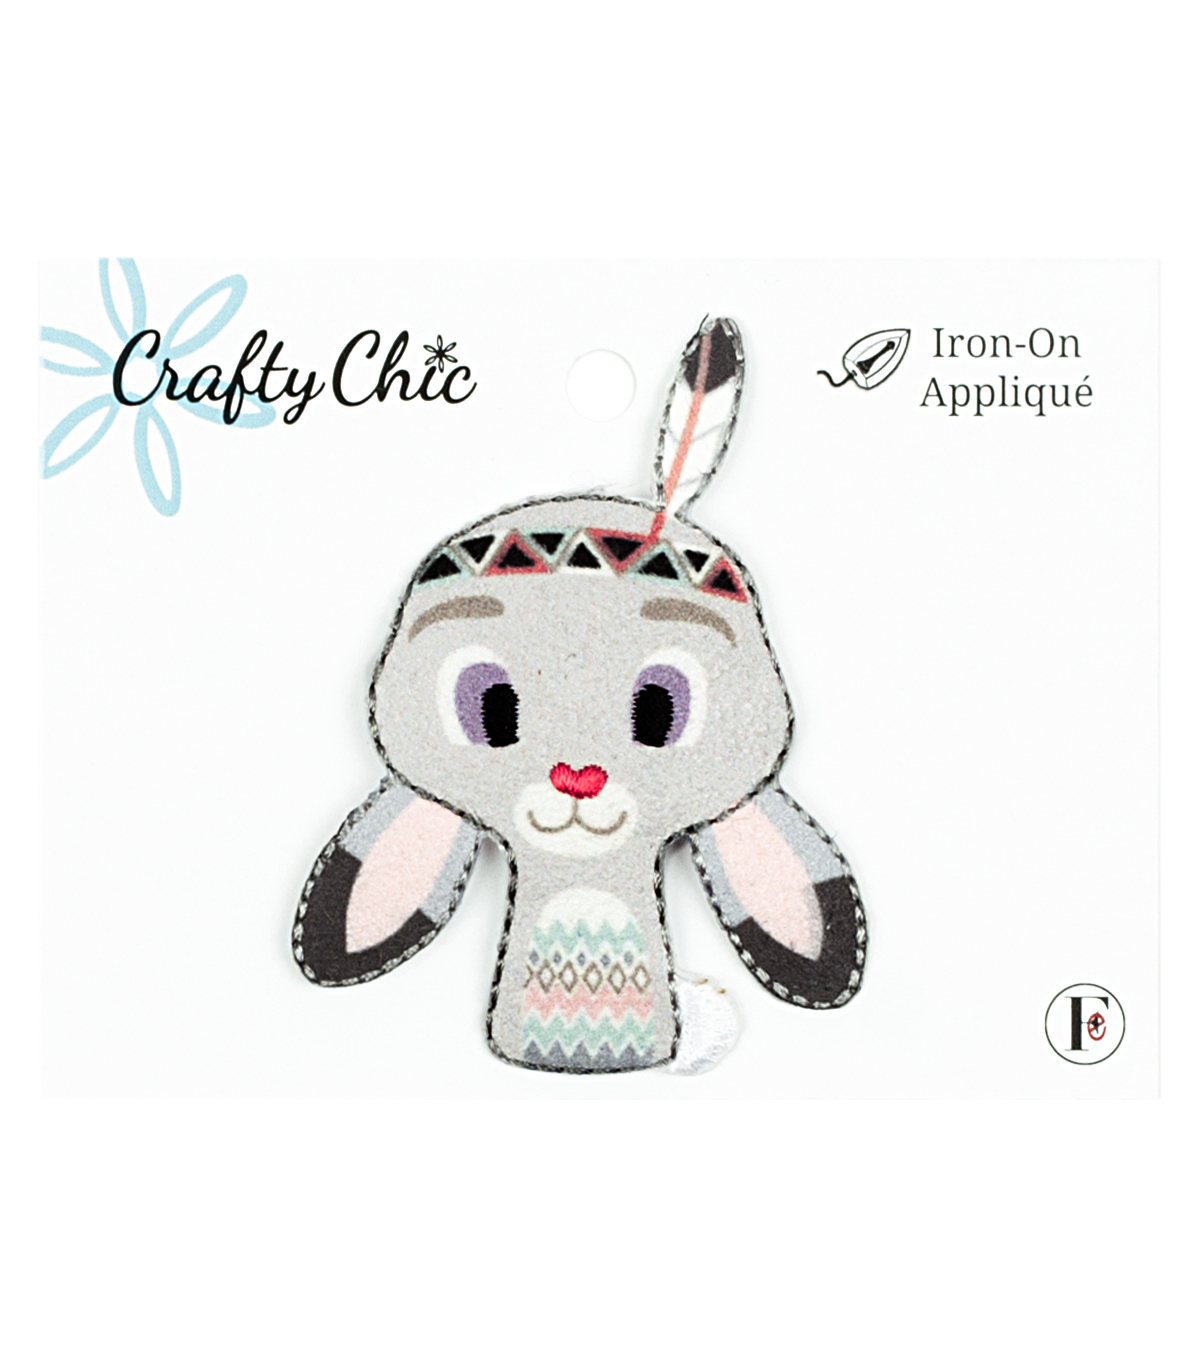 Crafty Chic 2\u0027\u0027x2.5\u0027\u0027 Tribal Rabbit Iron-on Applique